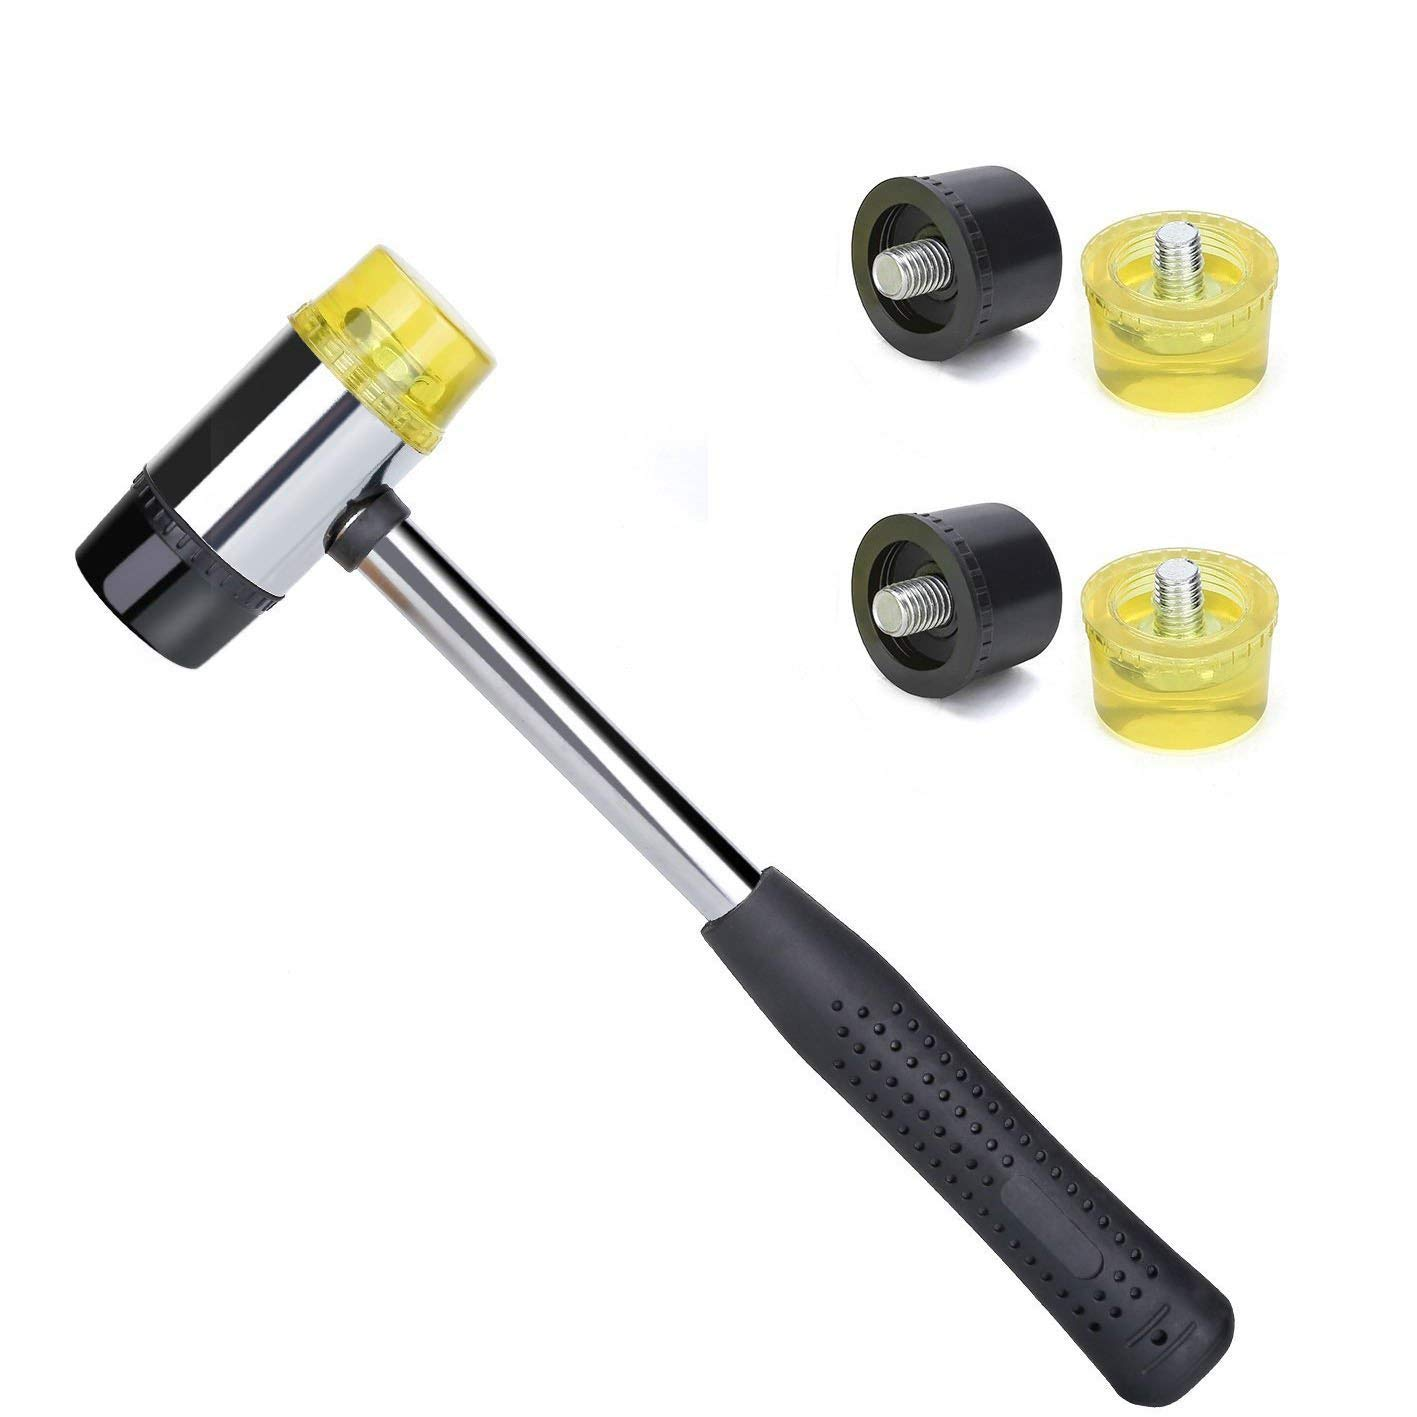 Rannb Lightweight Dual Head Rubber and Nylon Soft Mallet Sets Include 2 Soft Rubber & 2 Hard Plastic Head Tips Replacement (23mm Dia)